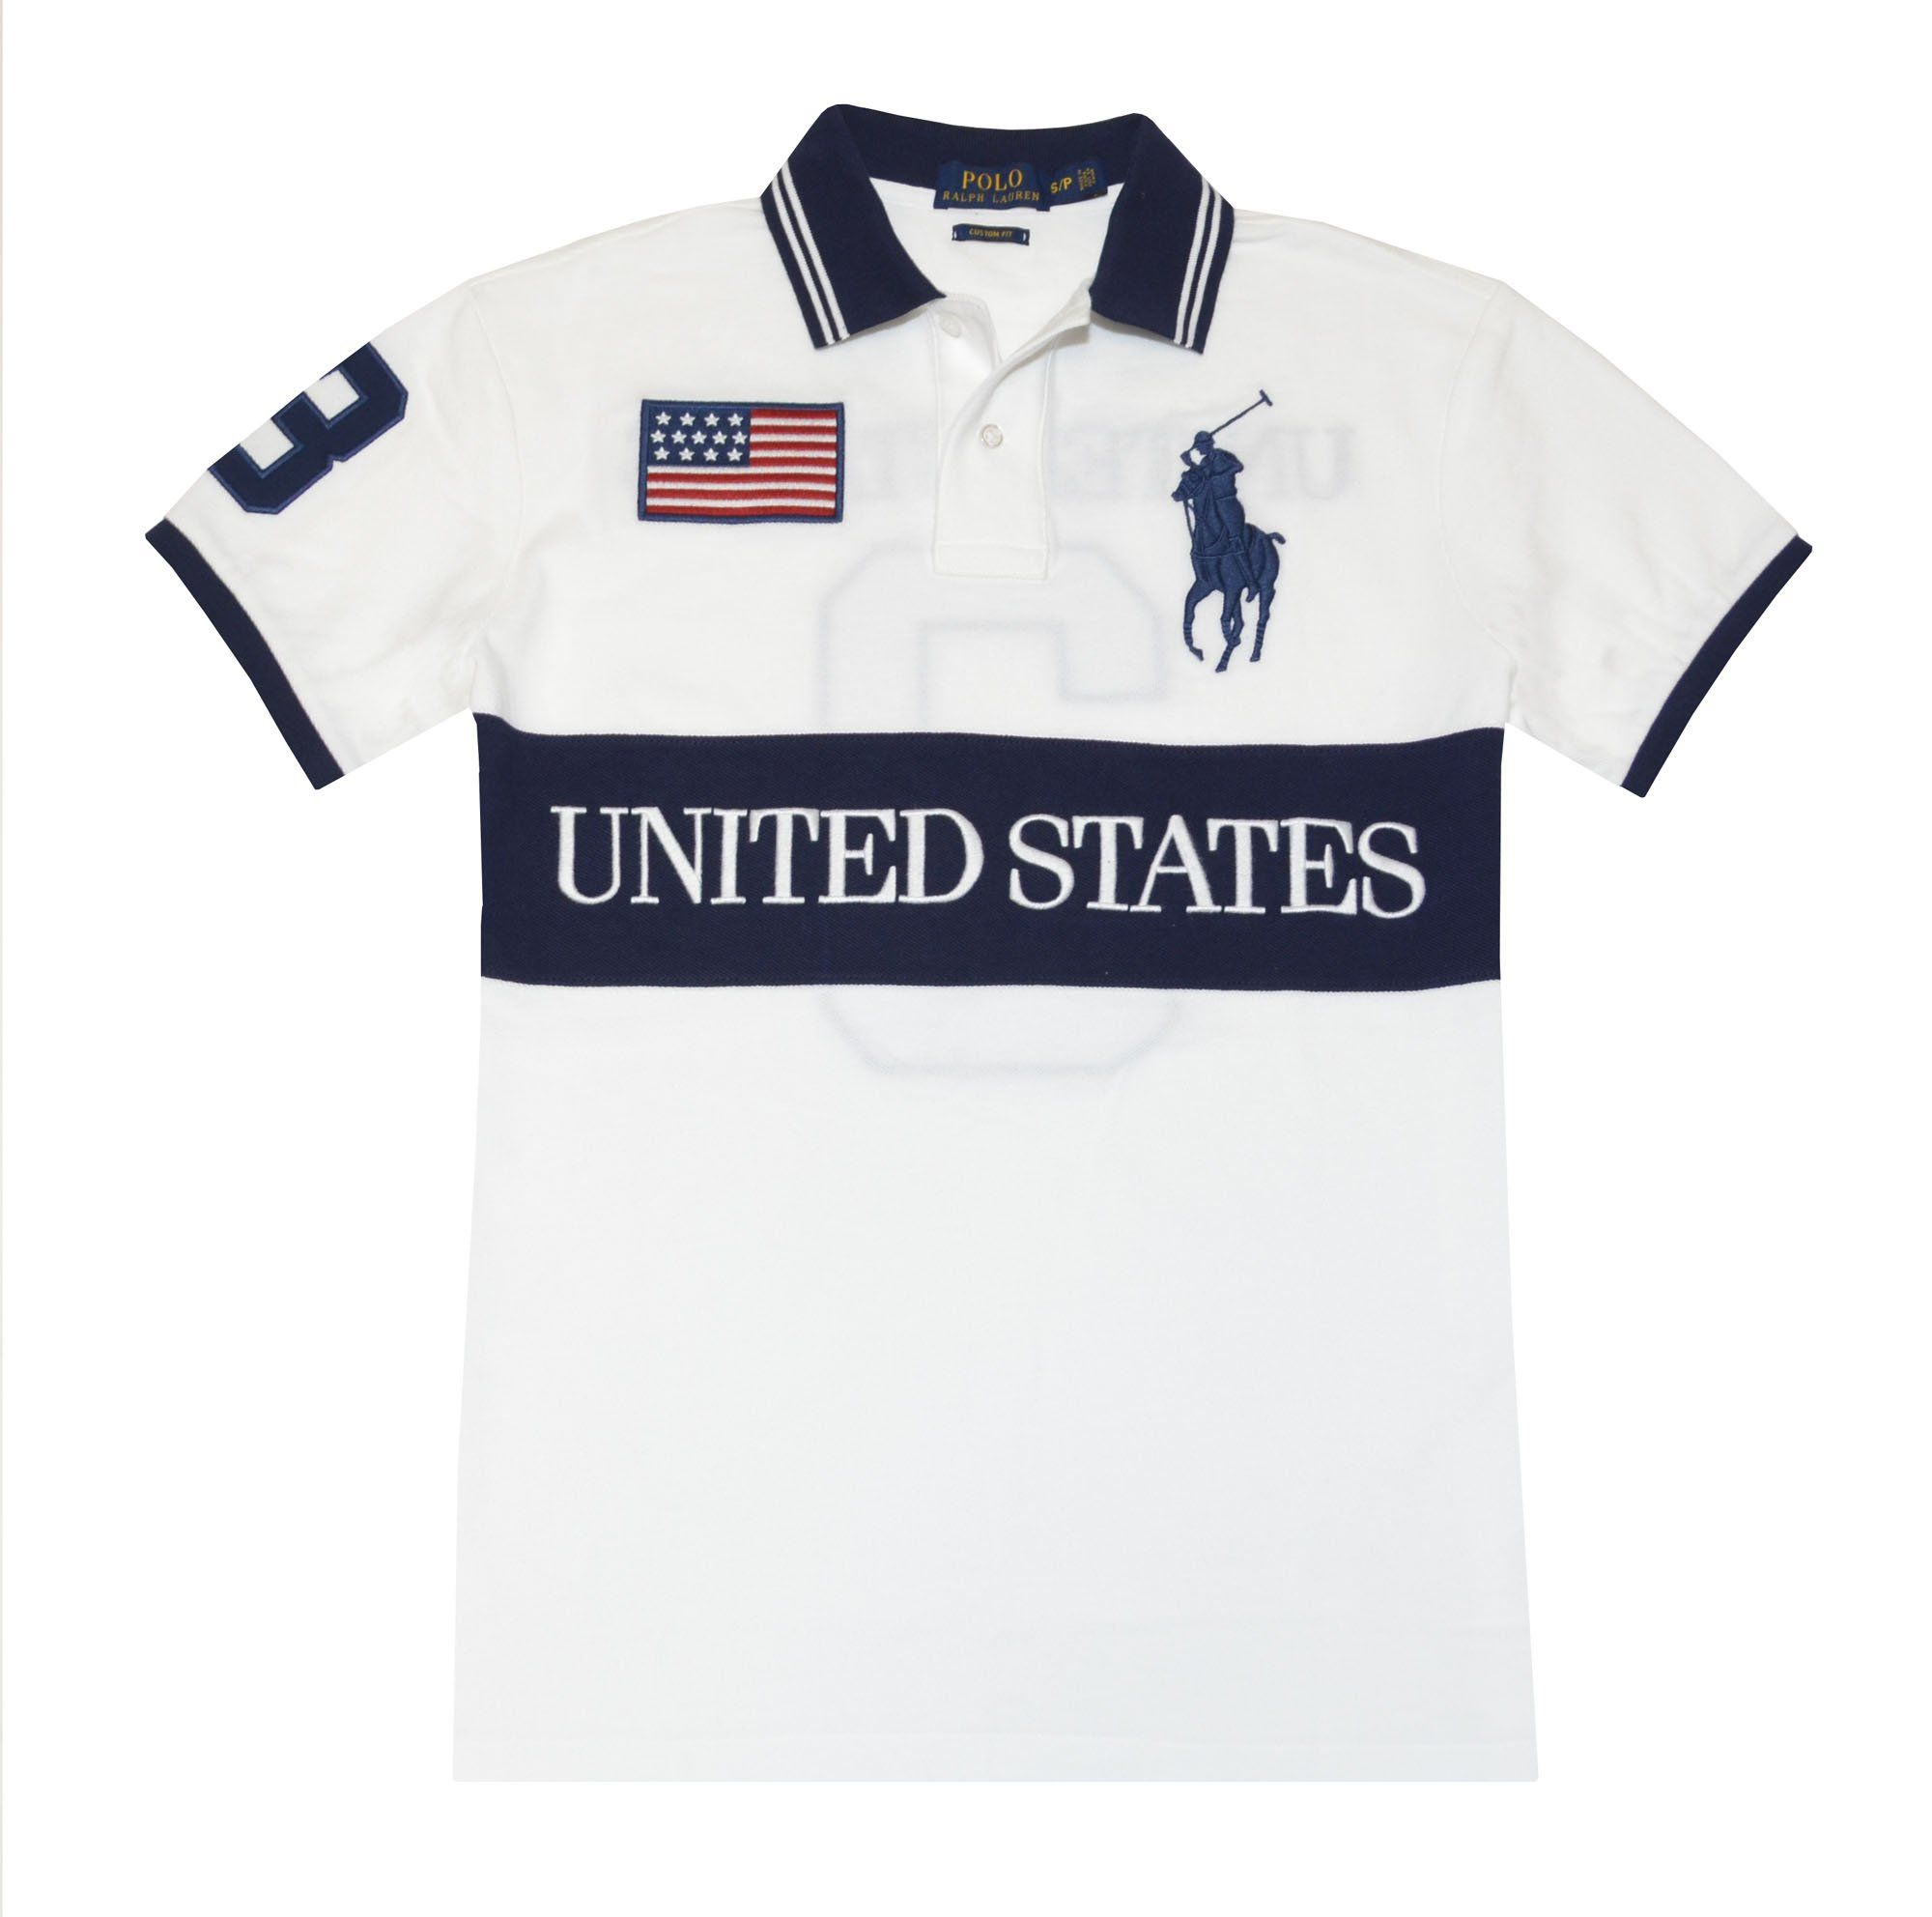 Polo Ralph Lauren Men Custom Fit United States Flag Polo Shirt (S, White/Navy/Red)  at Amazon Men's Clothing store: